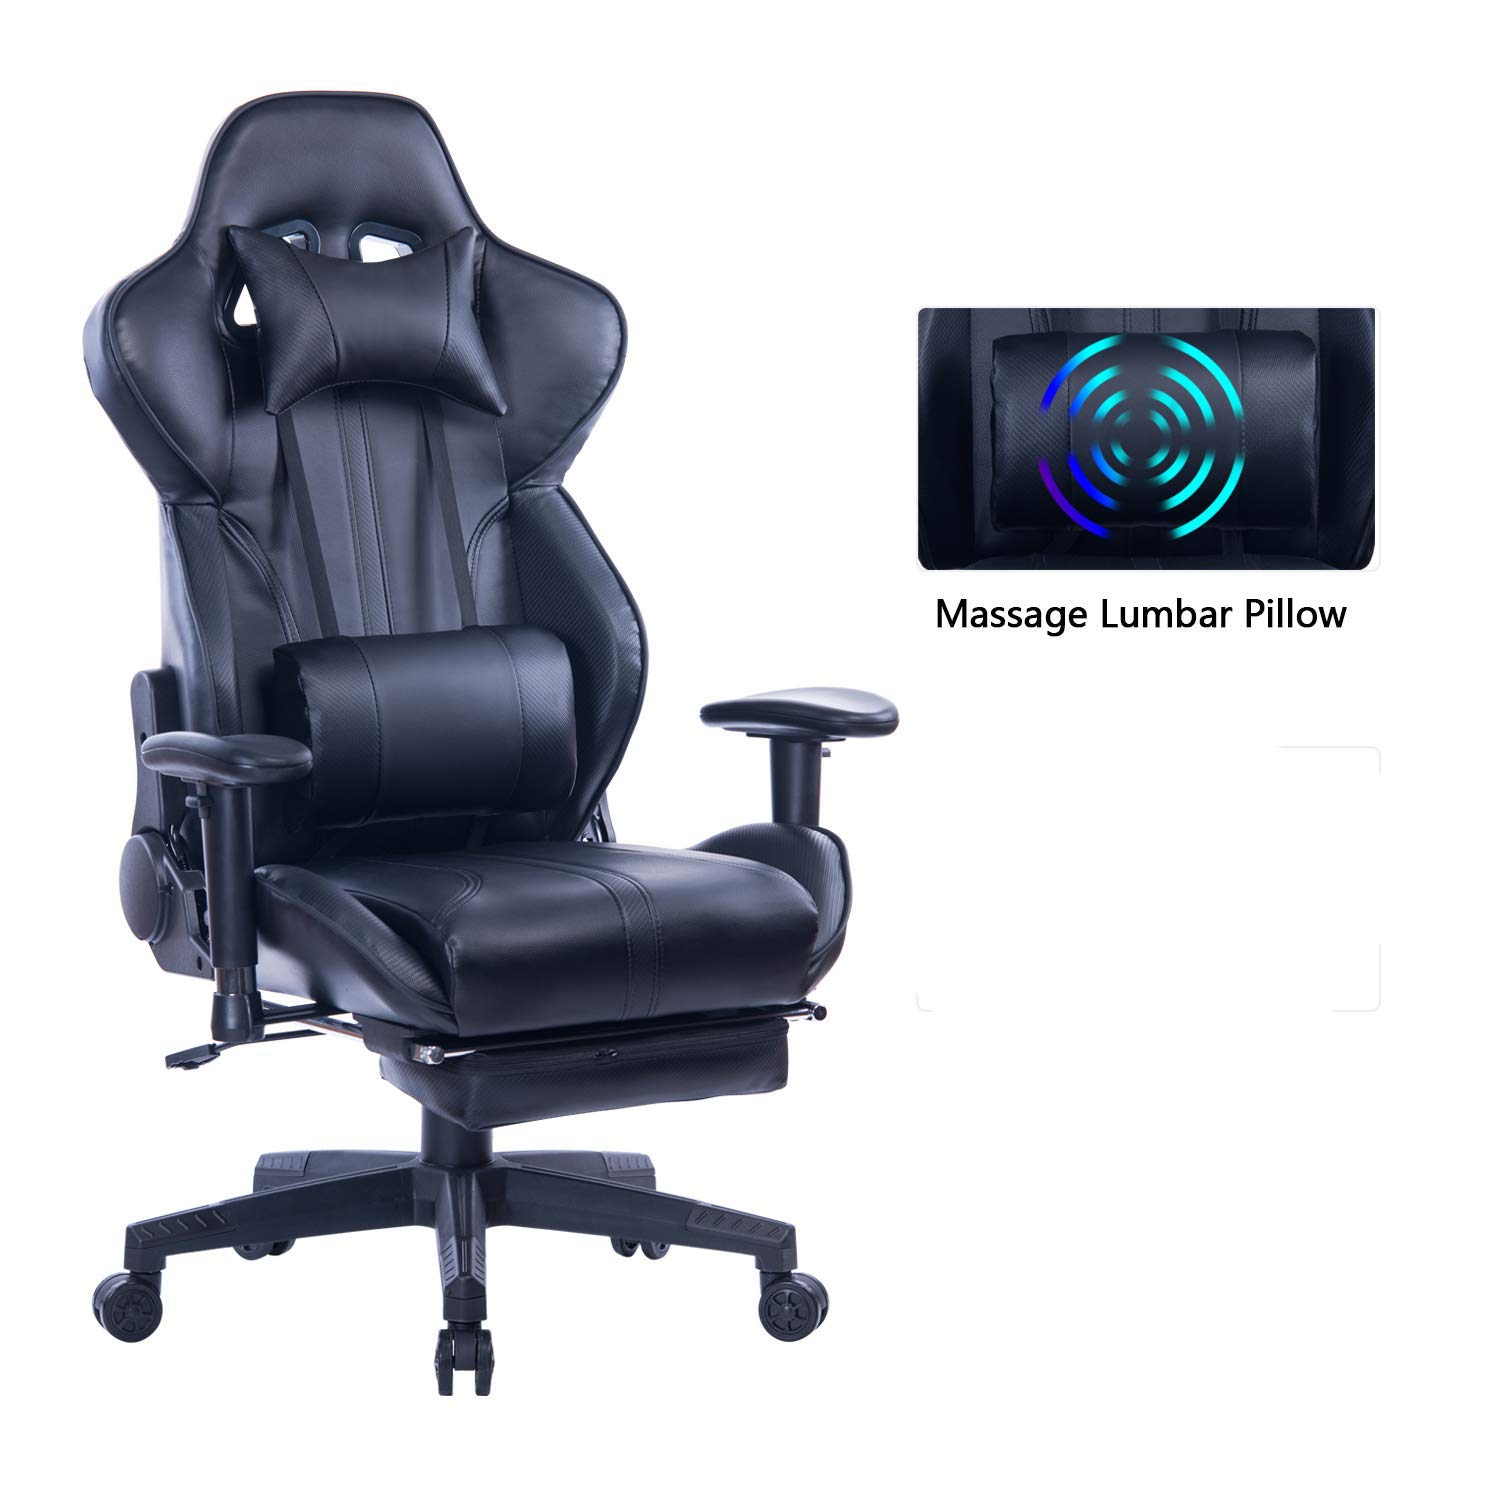 ZOPPO Gaming Chair with Adjustable Massage Lumbar Pillow,Retractable Footrest and Headrest -Racing Ergonomic High-Back PU Leather Office Computer Executive Desk Chair (Black) by ZOPPO